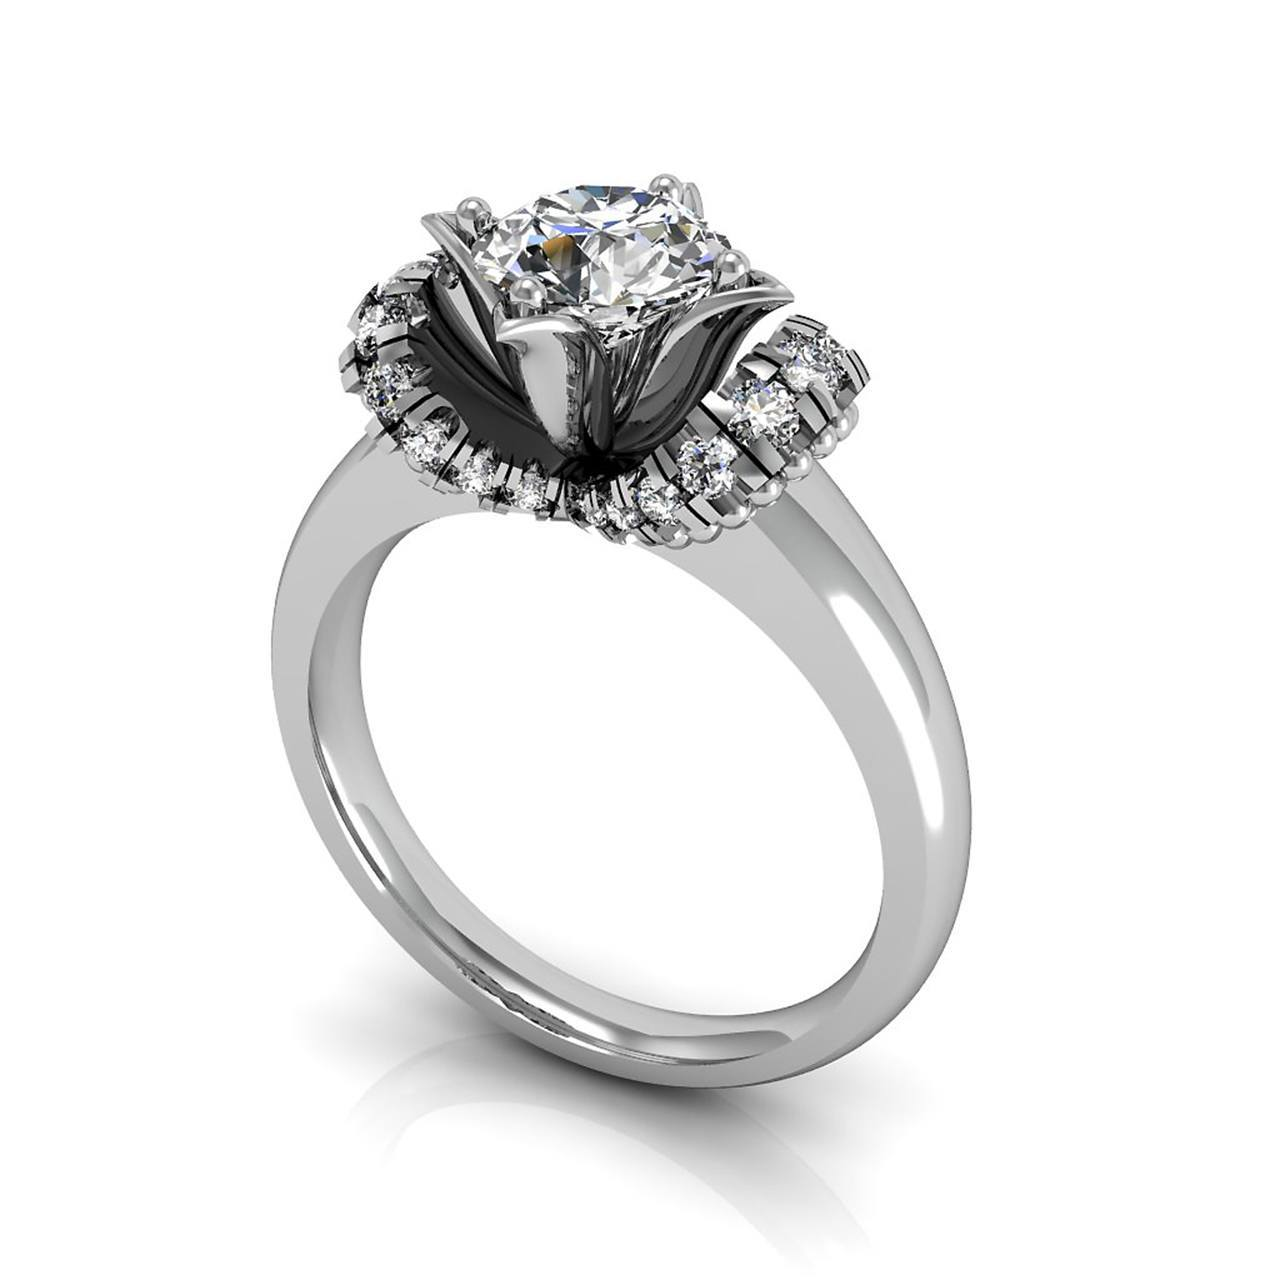 The Soigne 1.00 CT. TW. White Sapphire 14K Gold Engagement Ring